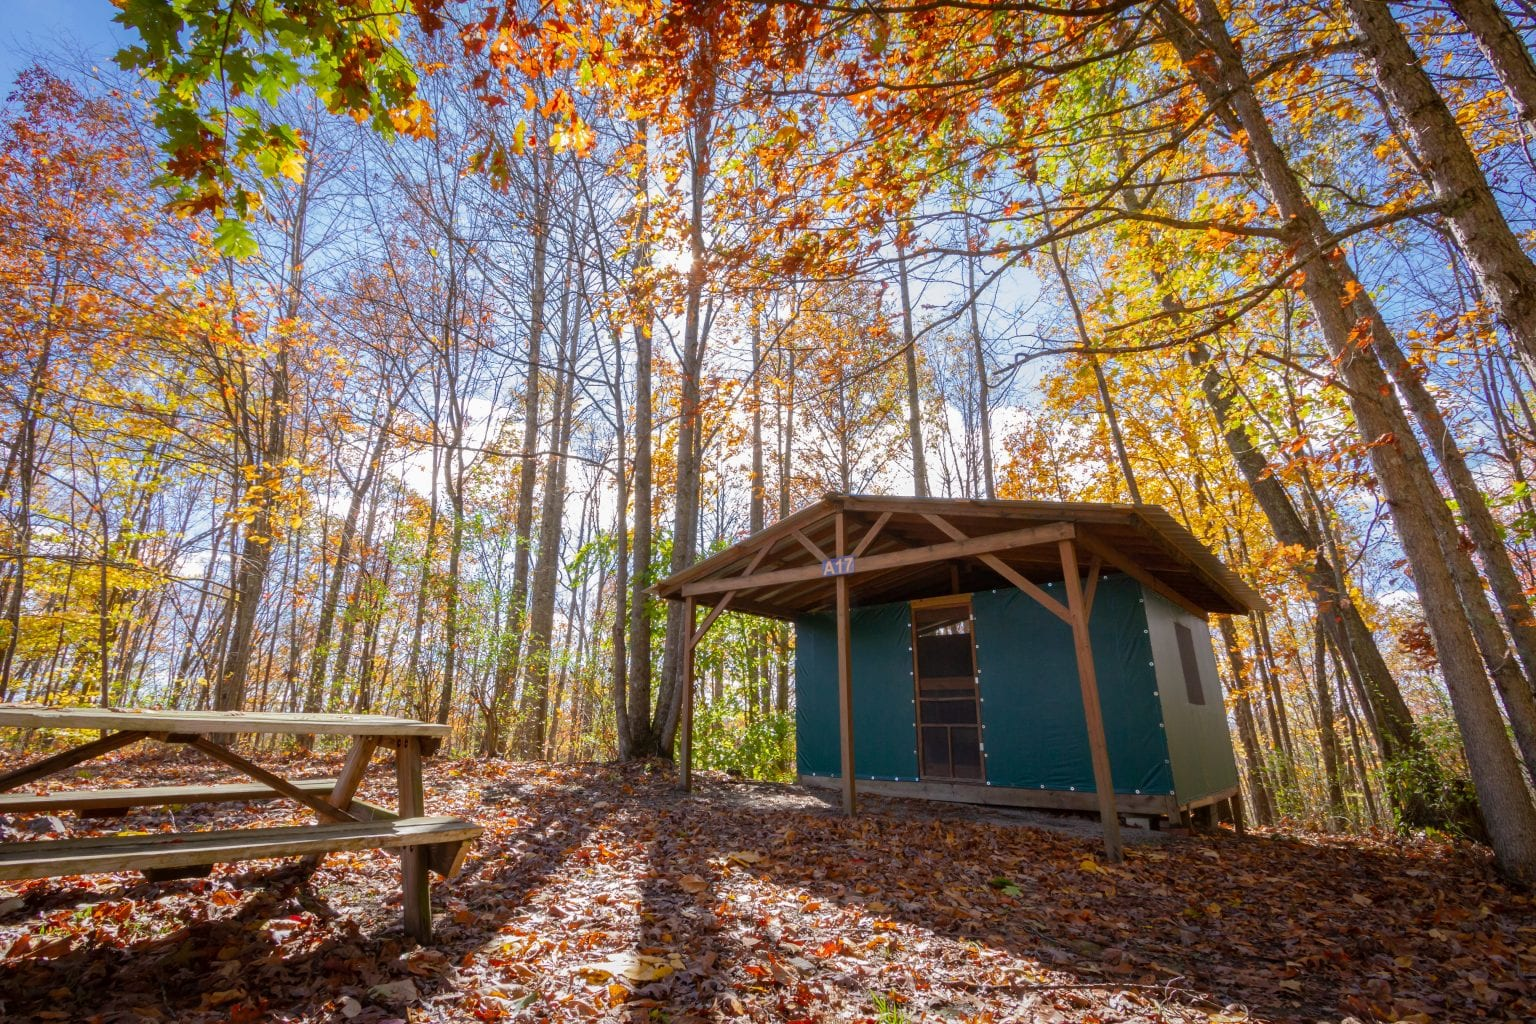 ACE's recently updated cabin tents are an affordable new river gorge rustic lodging option